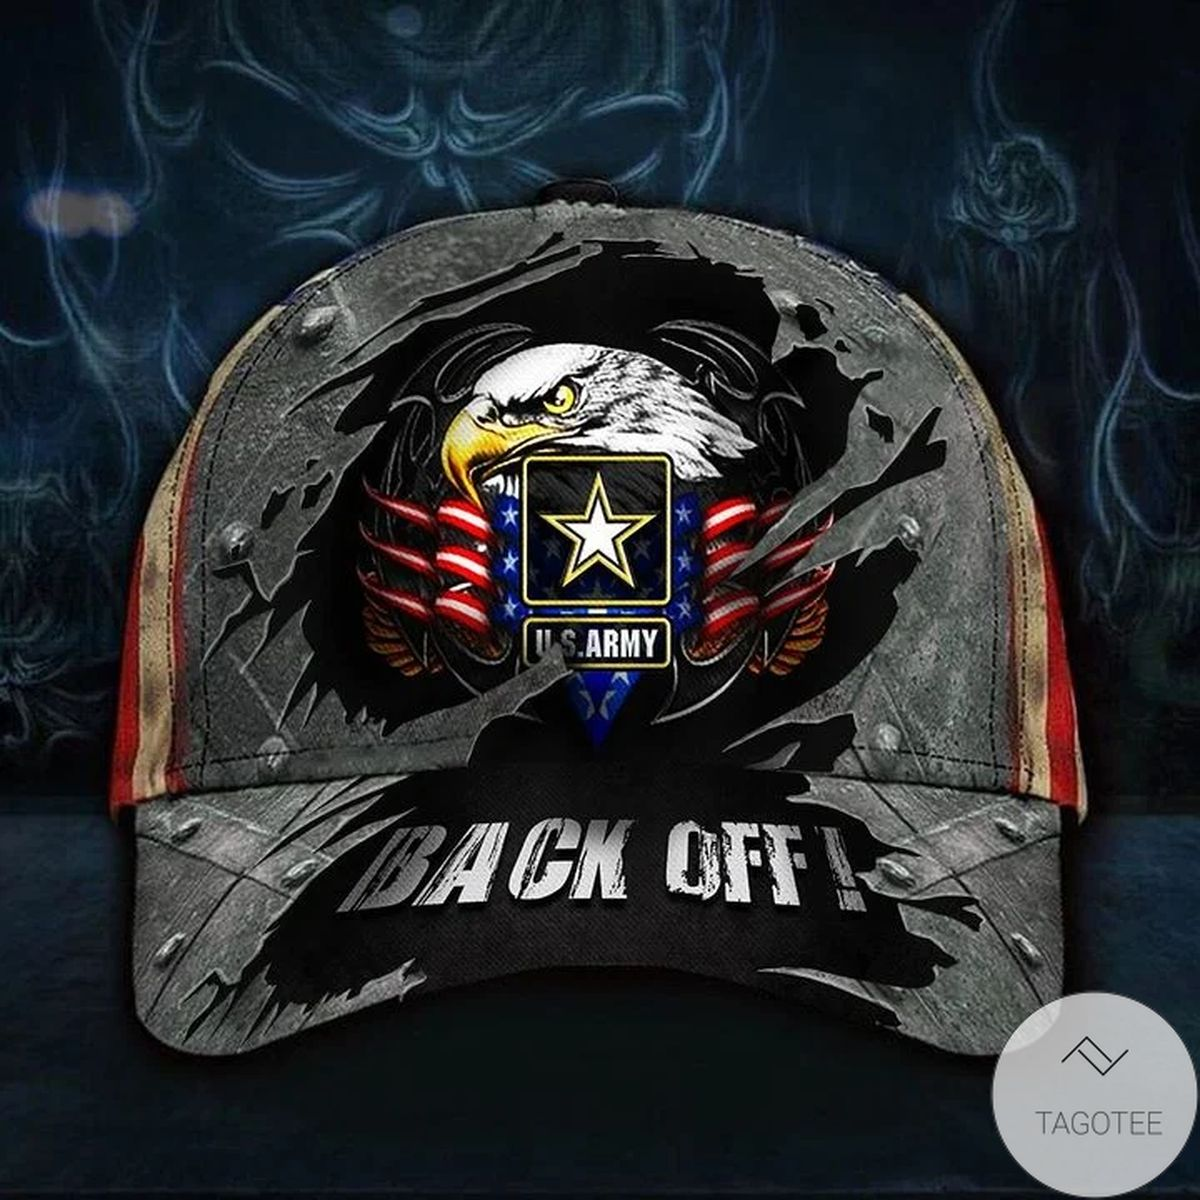 Unique Eagle US Army Back Off Hat Vintage USA Flag Patriotic Hat Honor Logo Army Gift